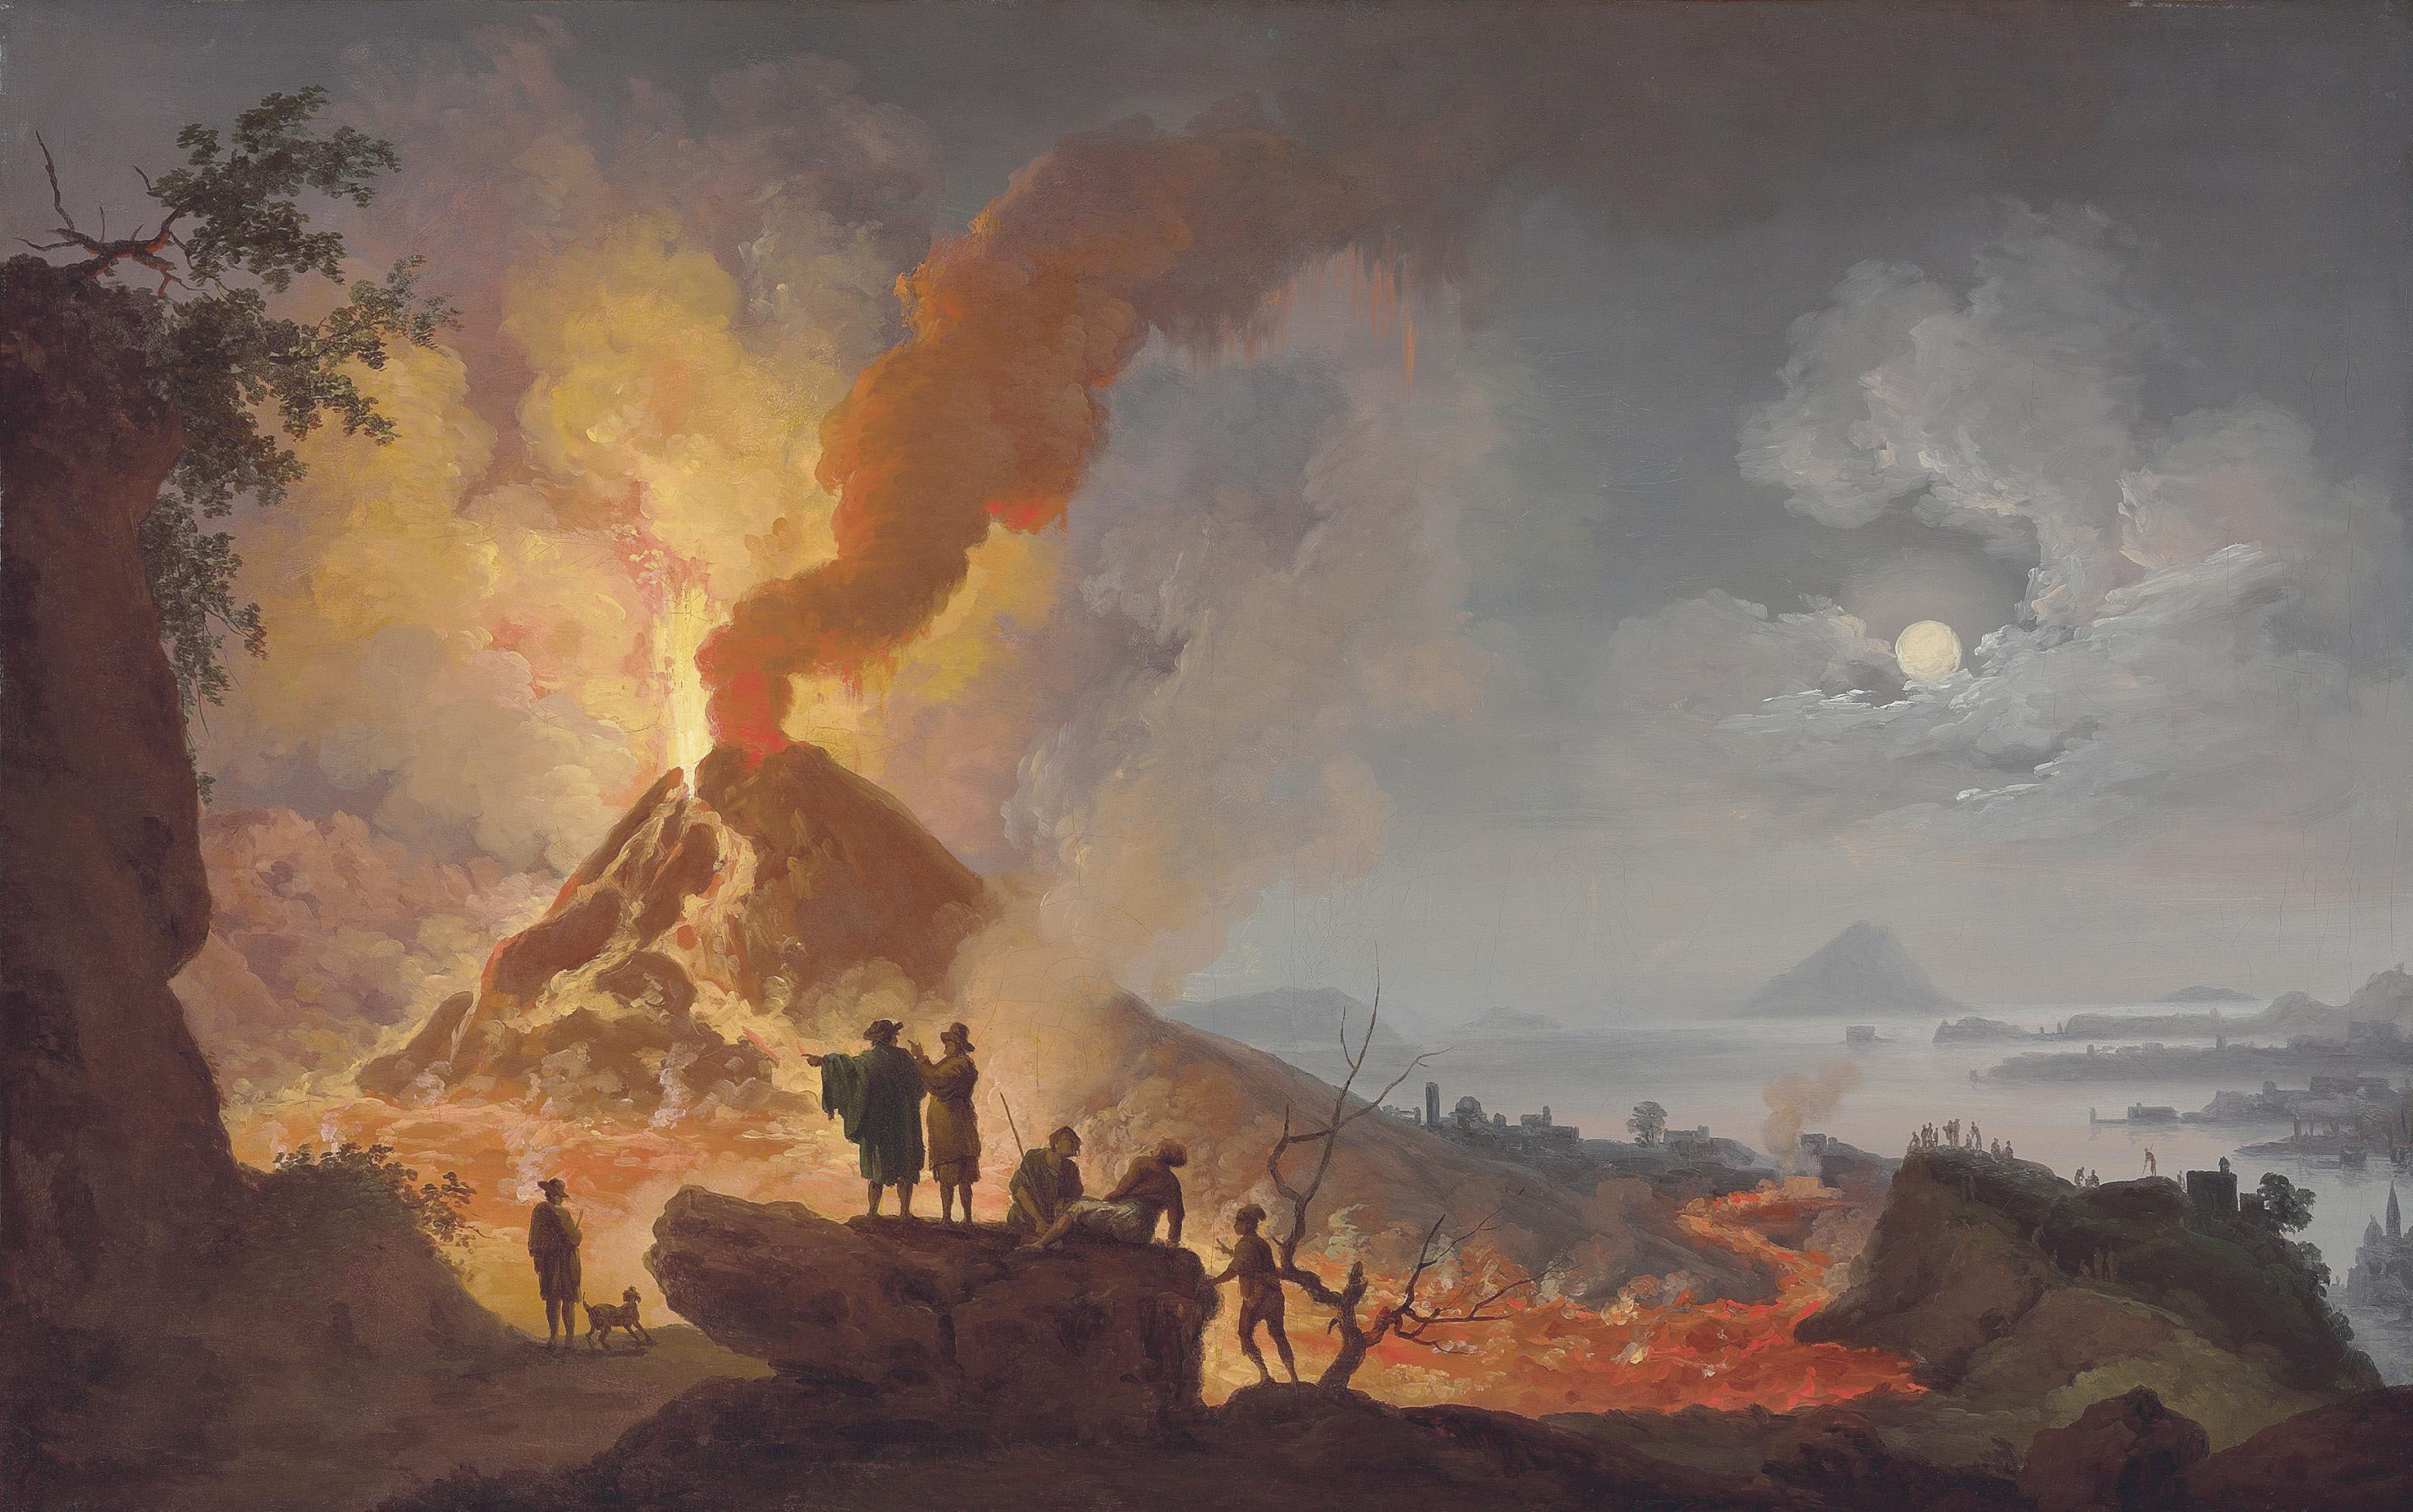 Mount Vesuvius erupting by night seen from the Atrio del Cavallo with spectators in the foreground, a panoramic view of the city and the Bay of Naples beyond